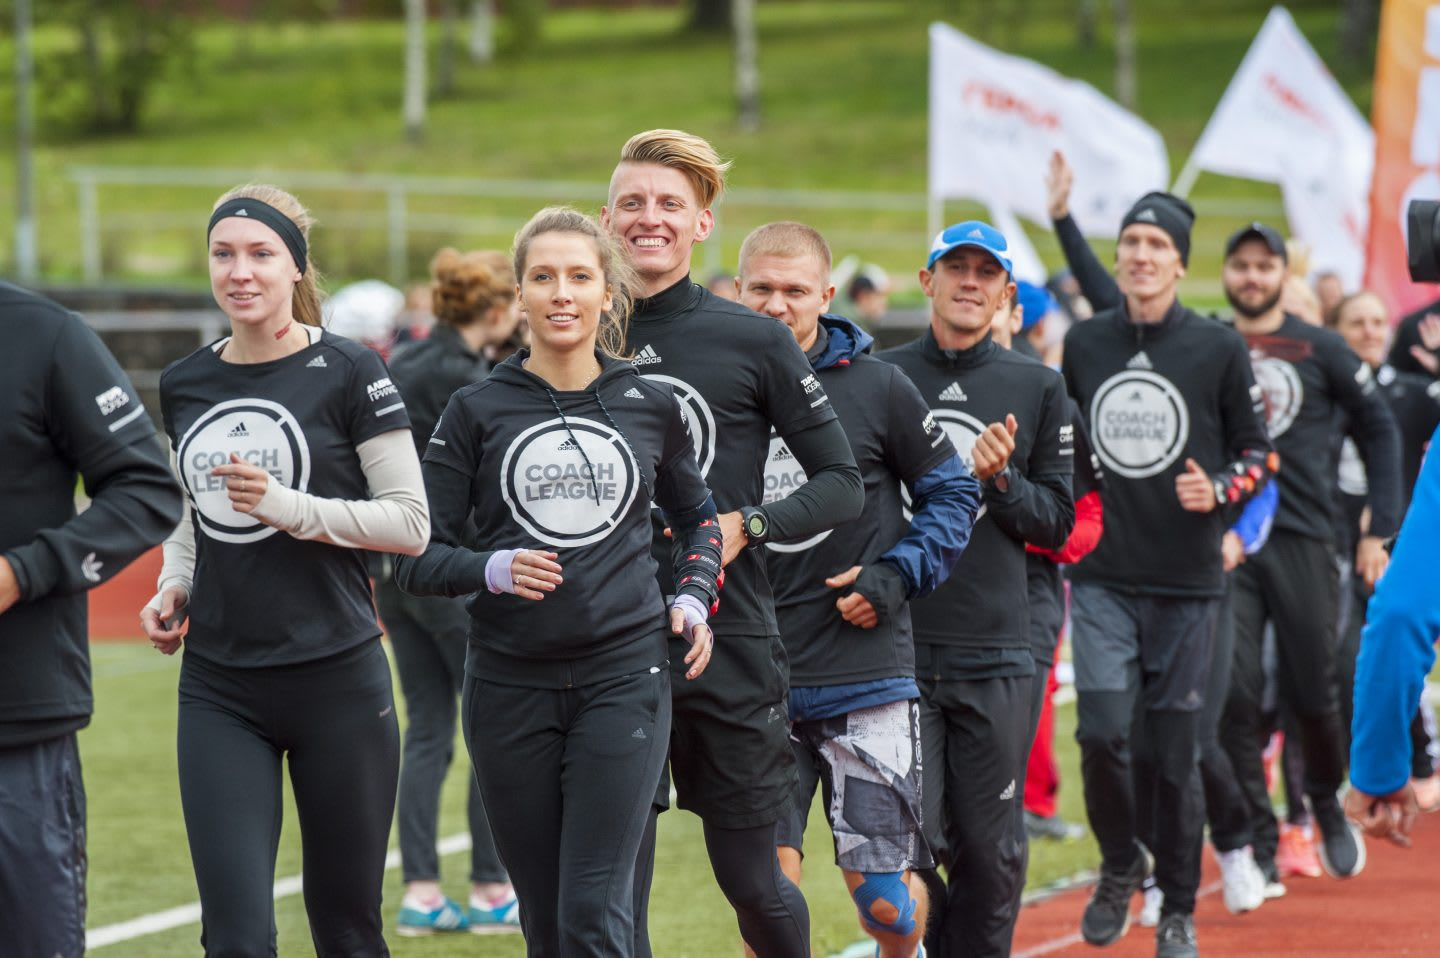 A group of people in the same outfit are running together behind each other. Running: Team; Workout; Motivation; Creators' Games